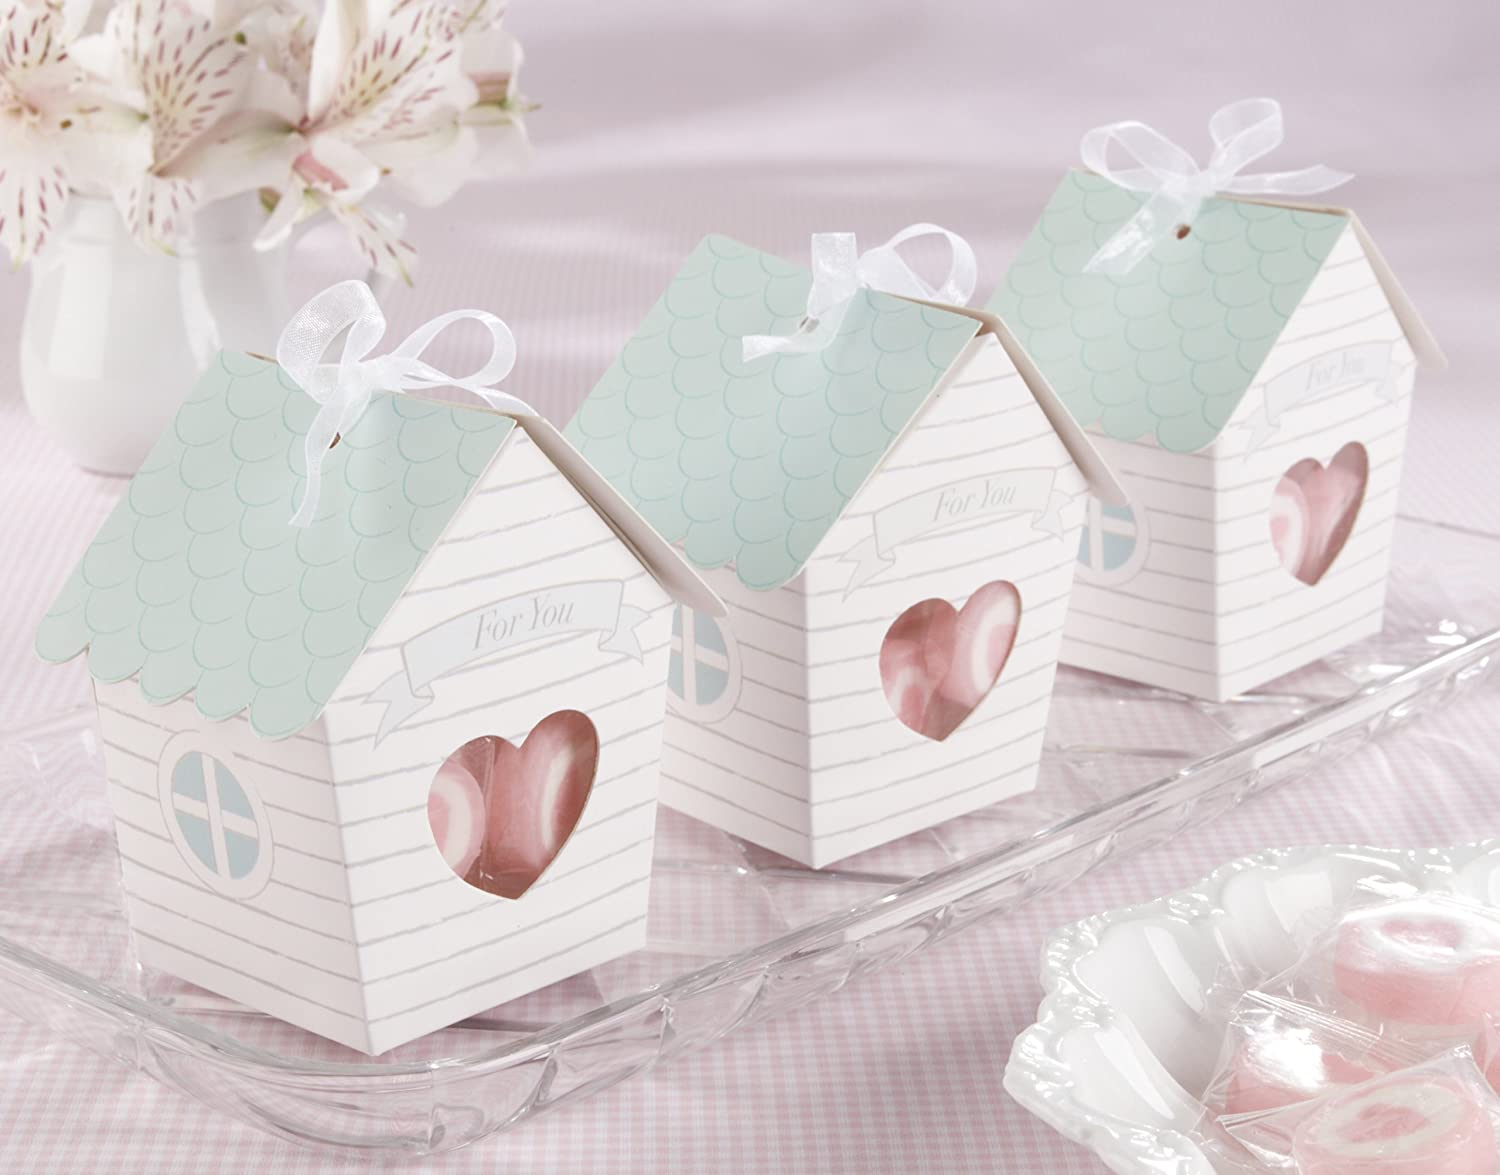 Amazon.com: Kate Aspen Set of 24 Bird House Favor Box ,Home Tweet ...